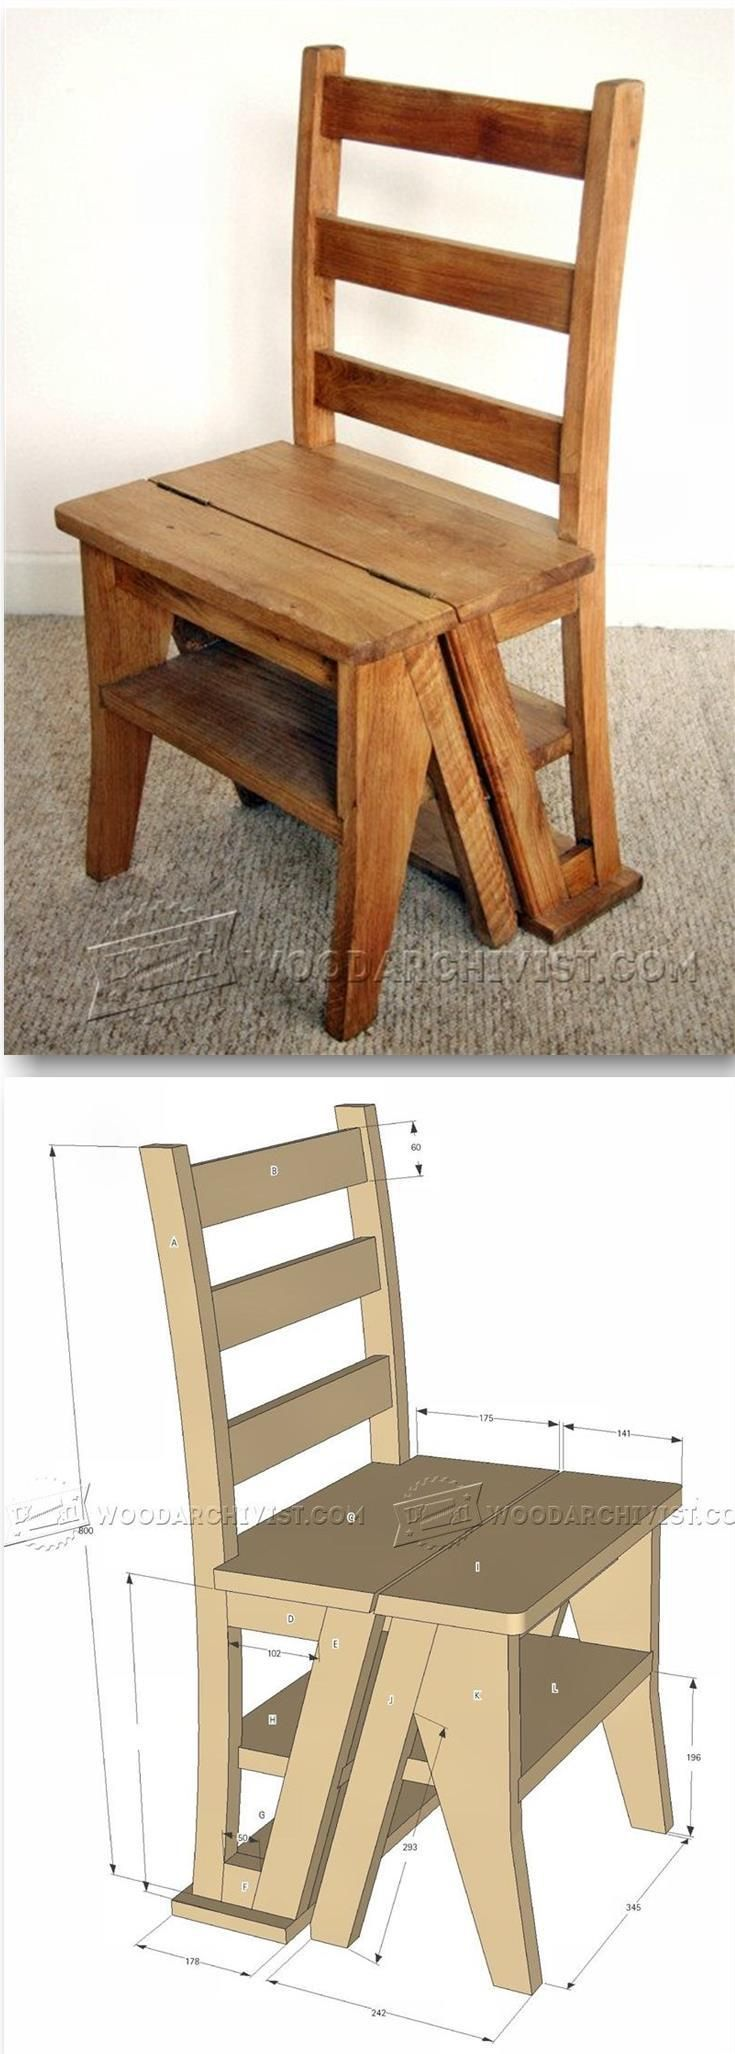 Make Step Stool - Furniture Plans and Projects   WoodArchivist.com